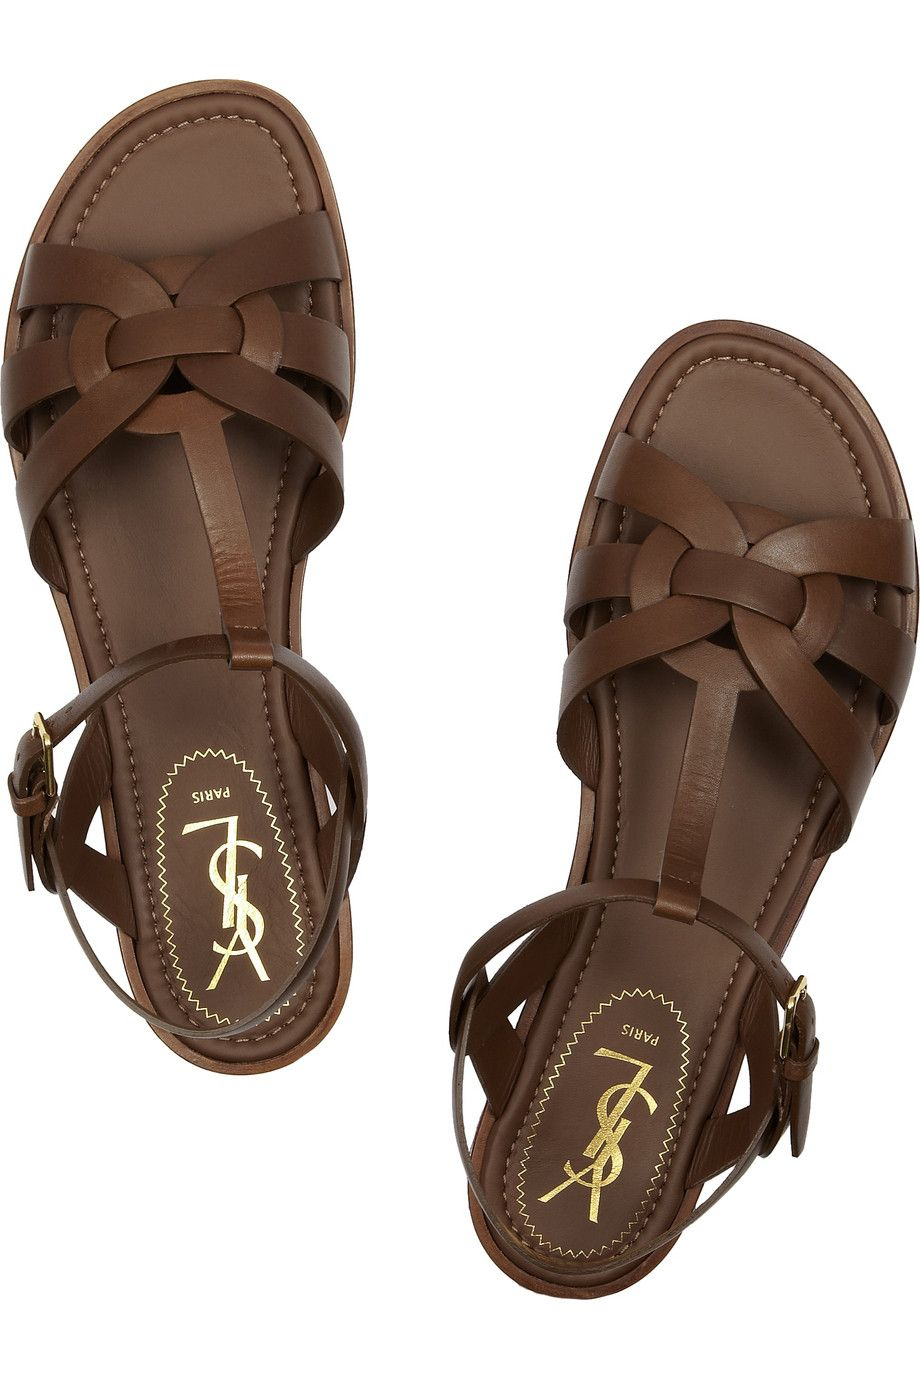 Yves Saint Laurent Tribute Leather Sandals Only 417 Can